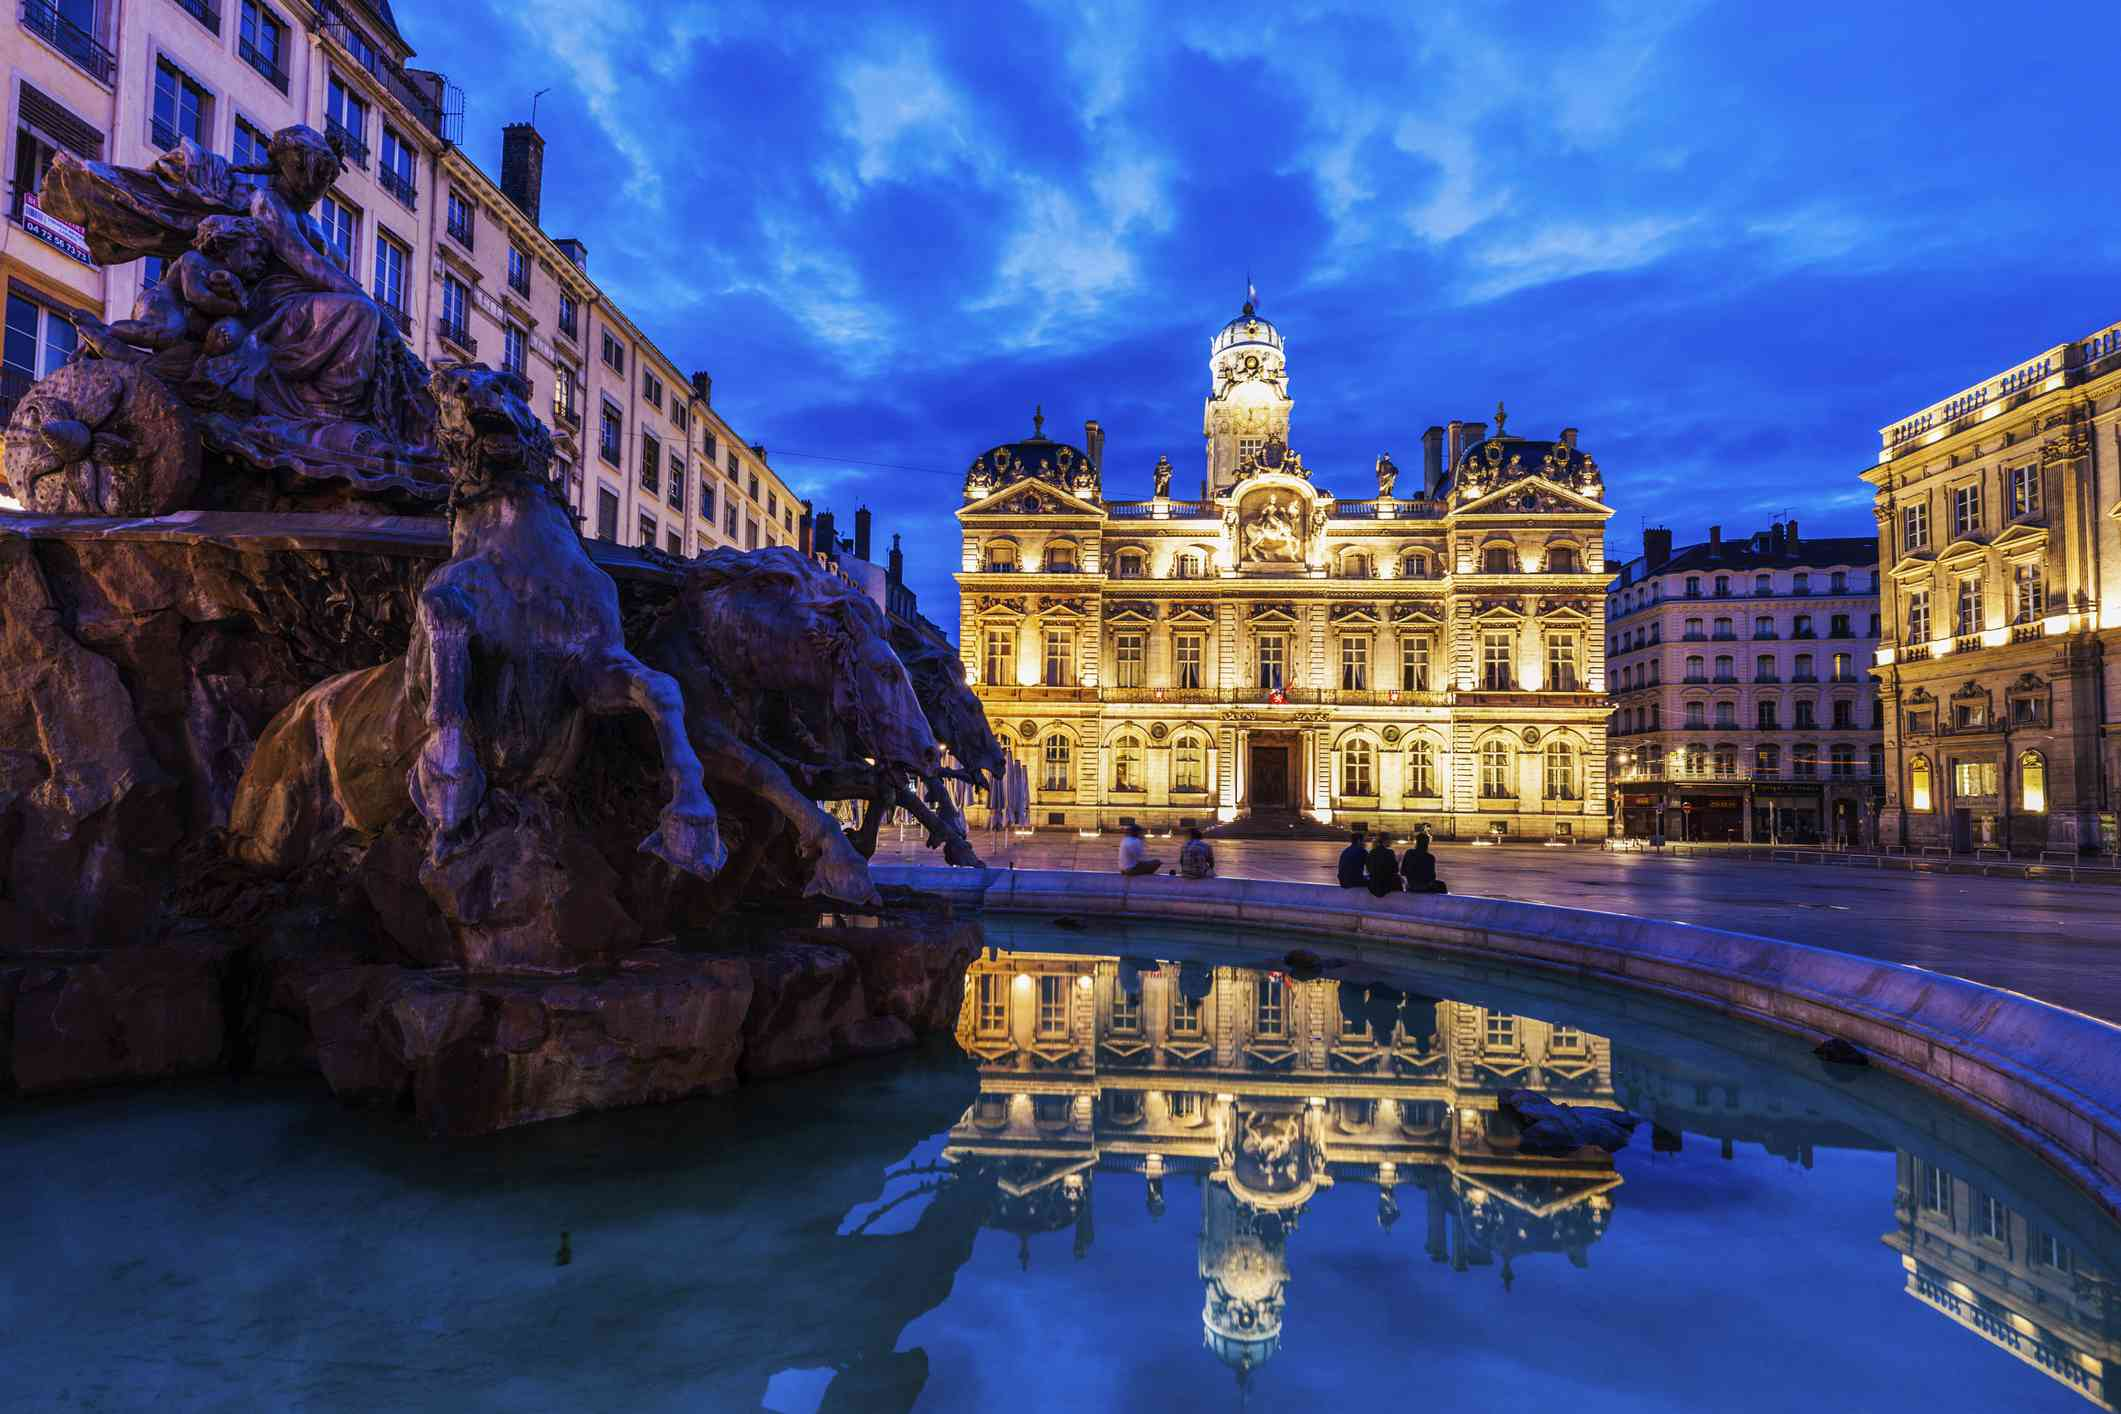 Lyon City Hall on Place des Terreaux and Bartholdi Fountain at night.